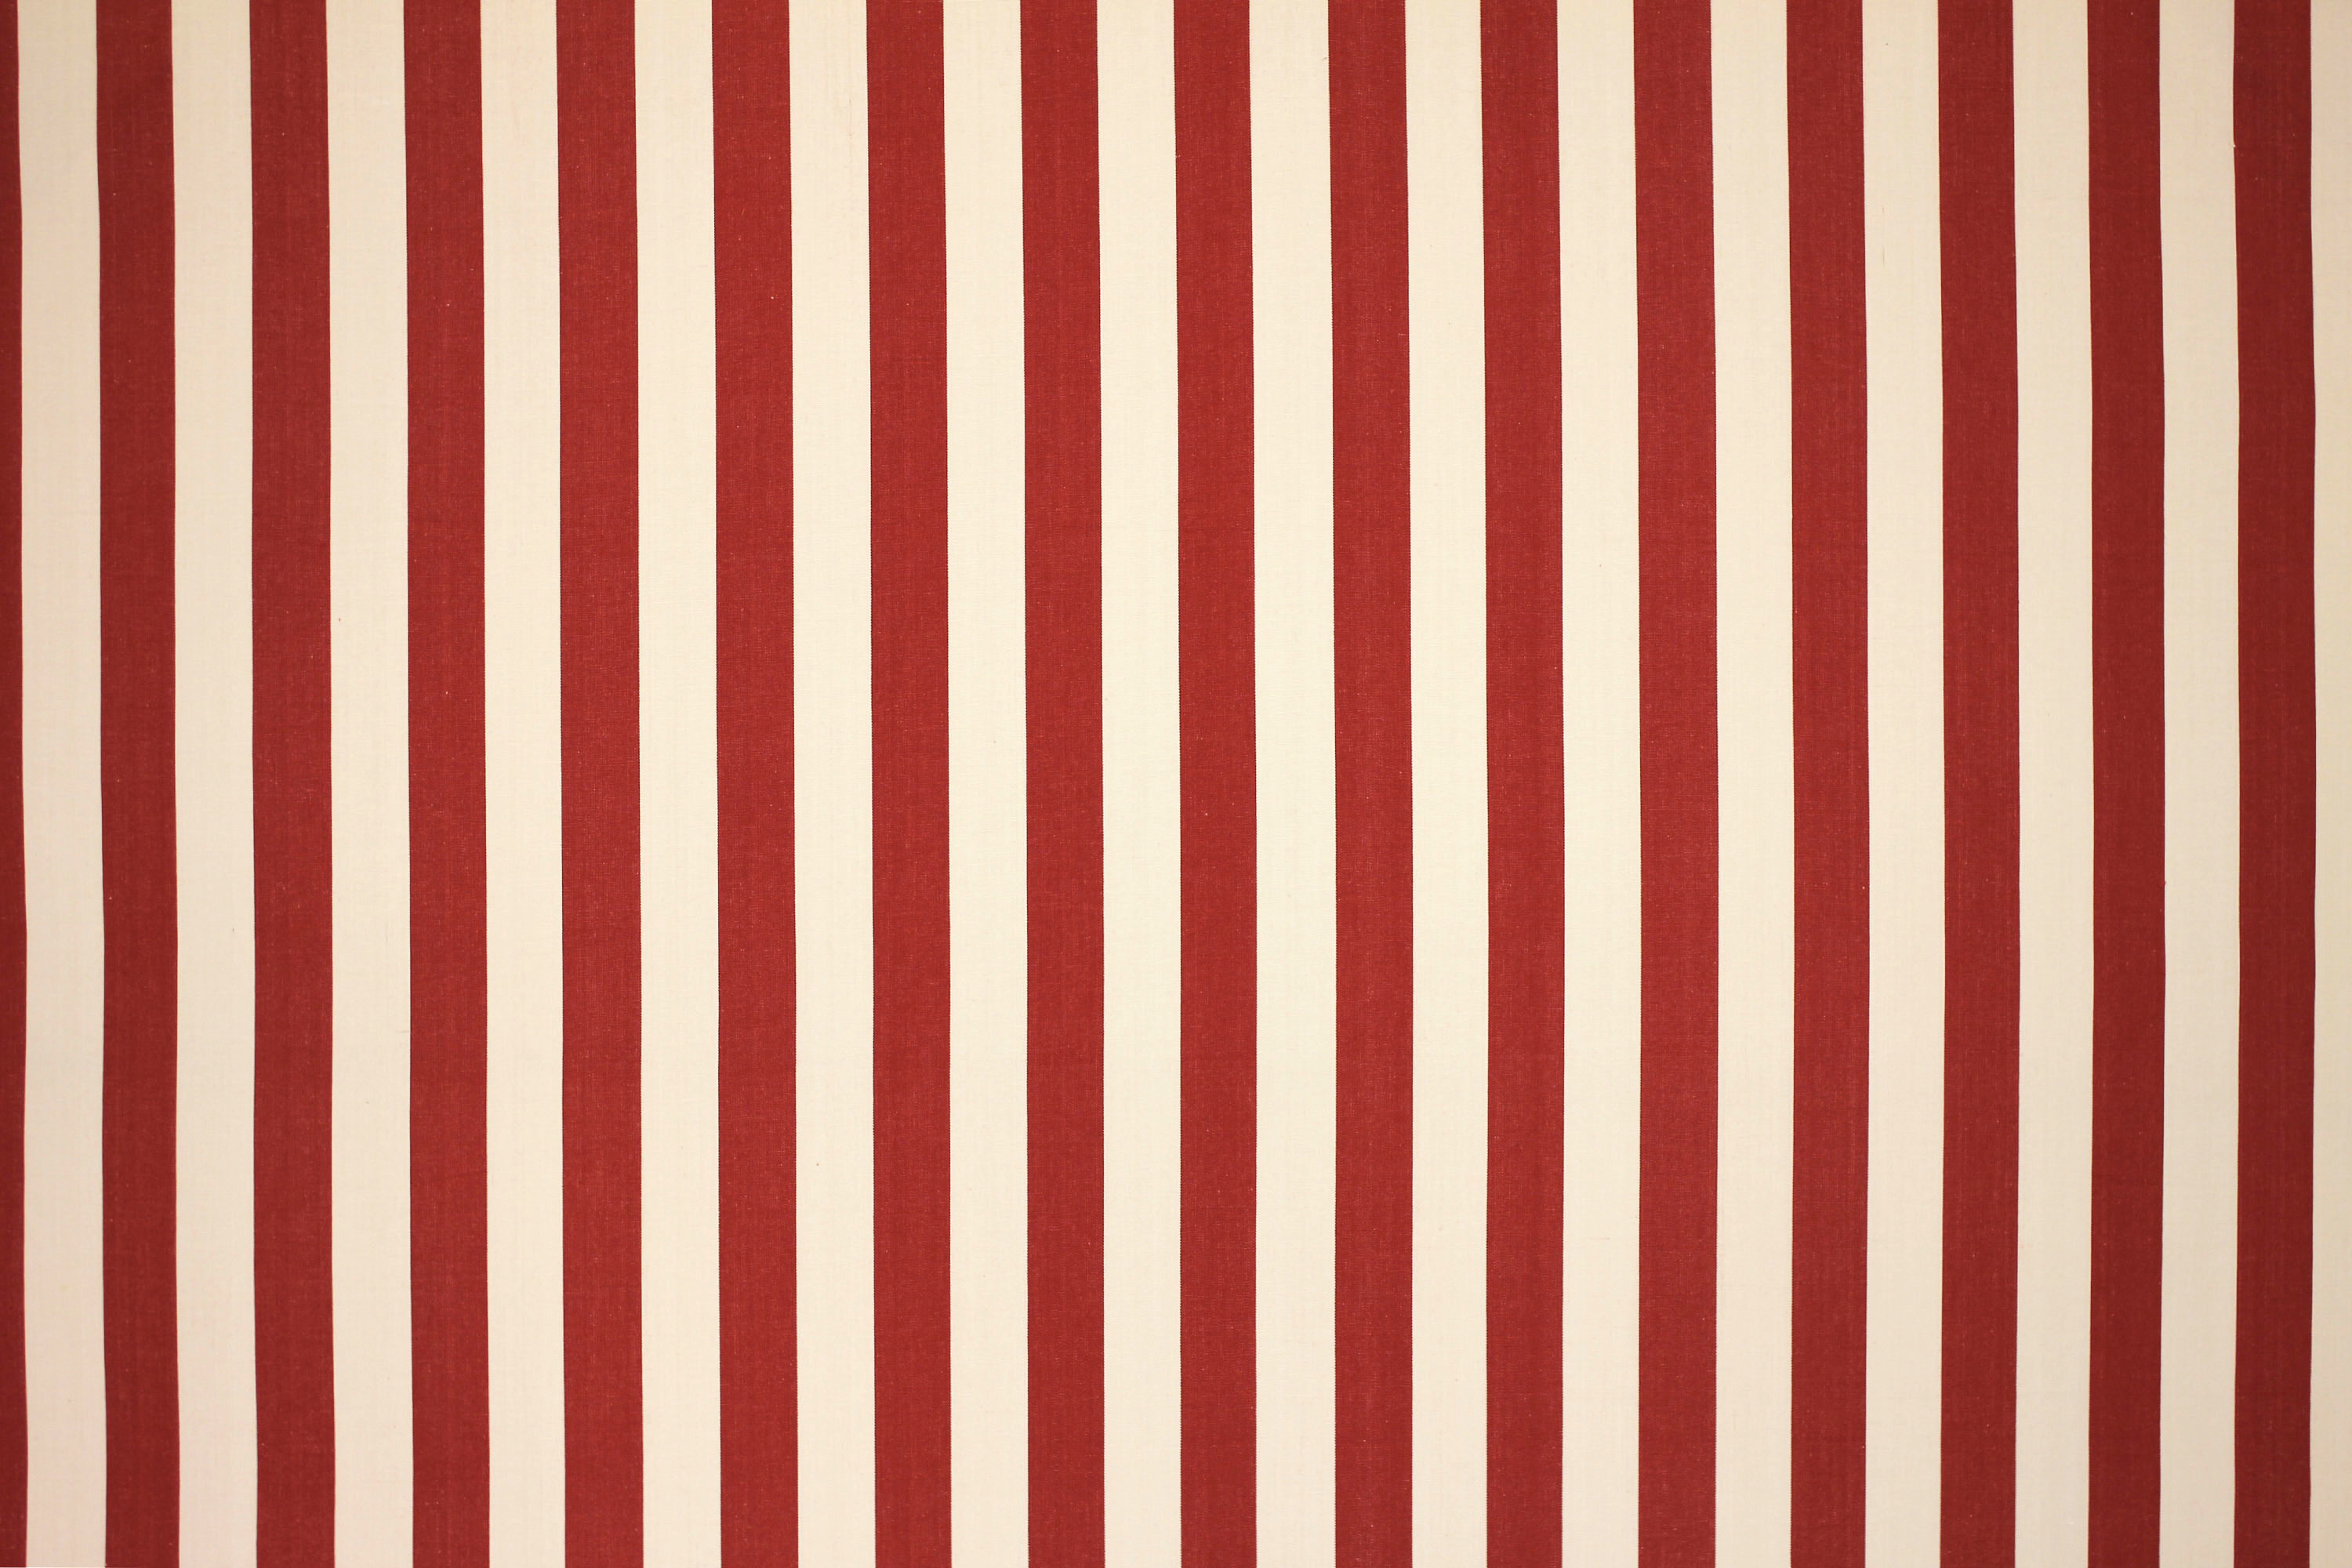 Red and White Striped Fabrics | Striped Curtain Fabrics ...